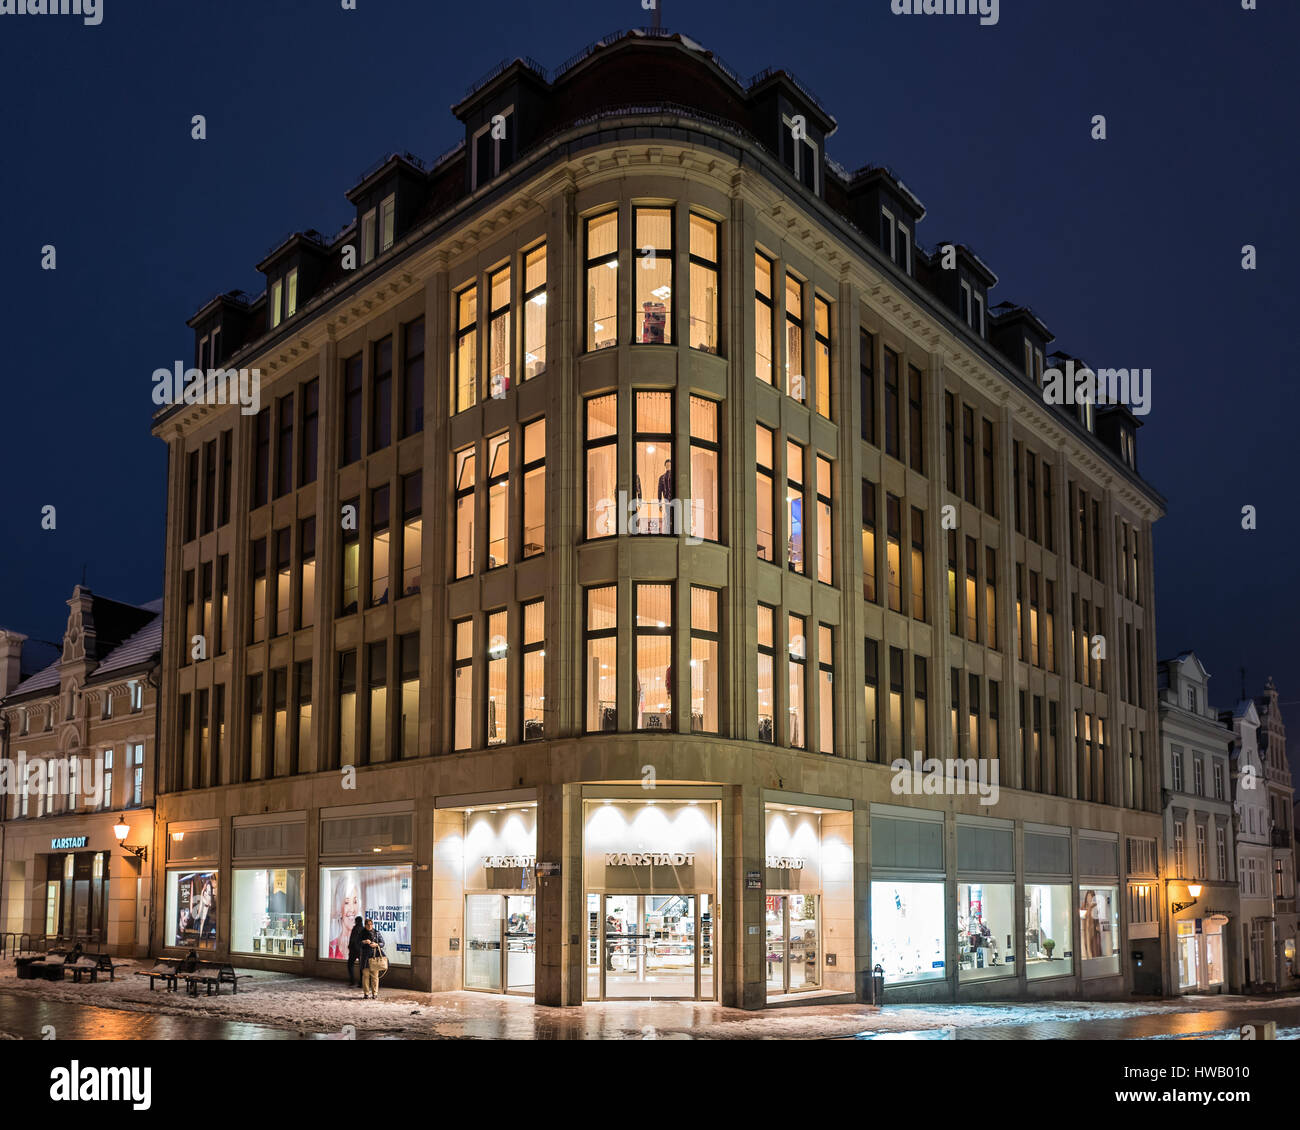 Karstadt original company building in Wismar opened by Rudolph Karstadt on May 14, 1881 Stock Photo